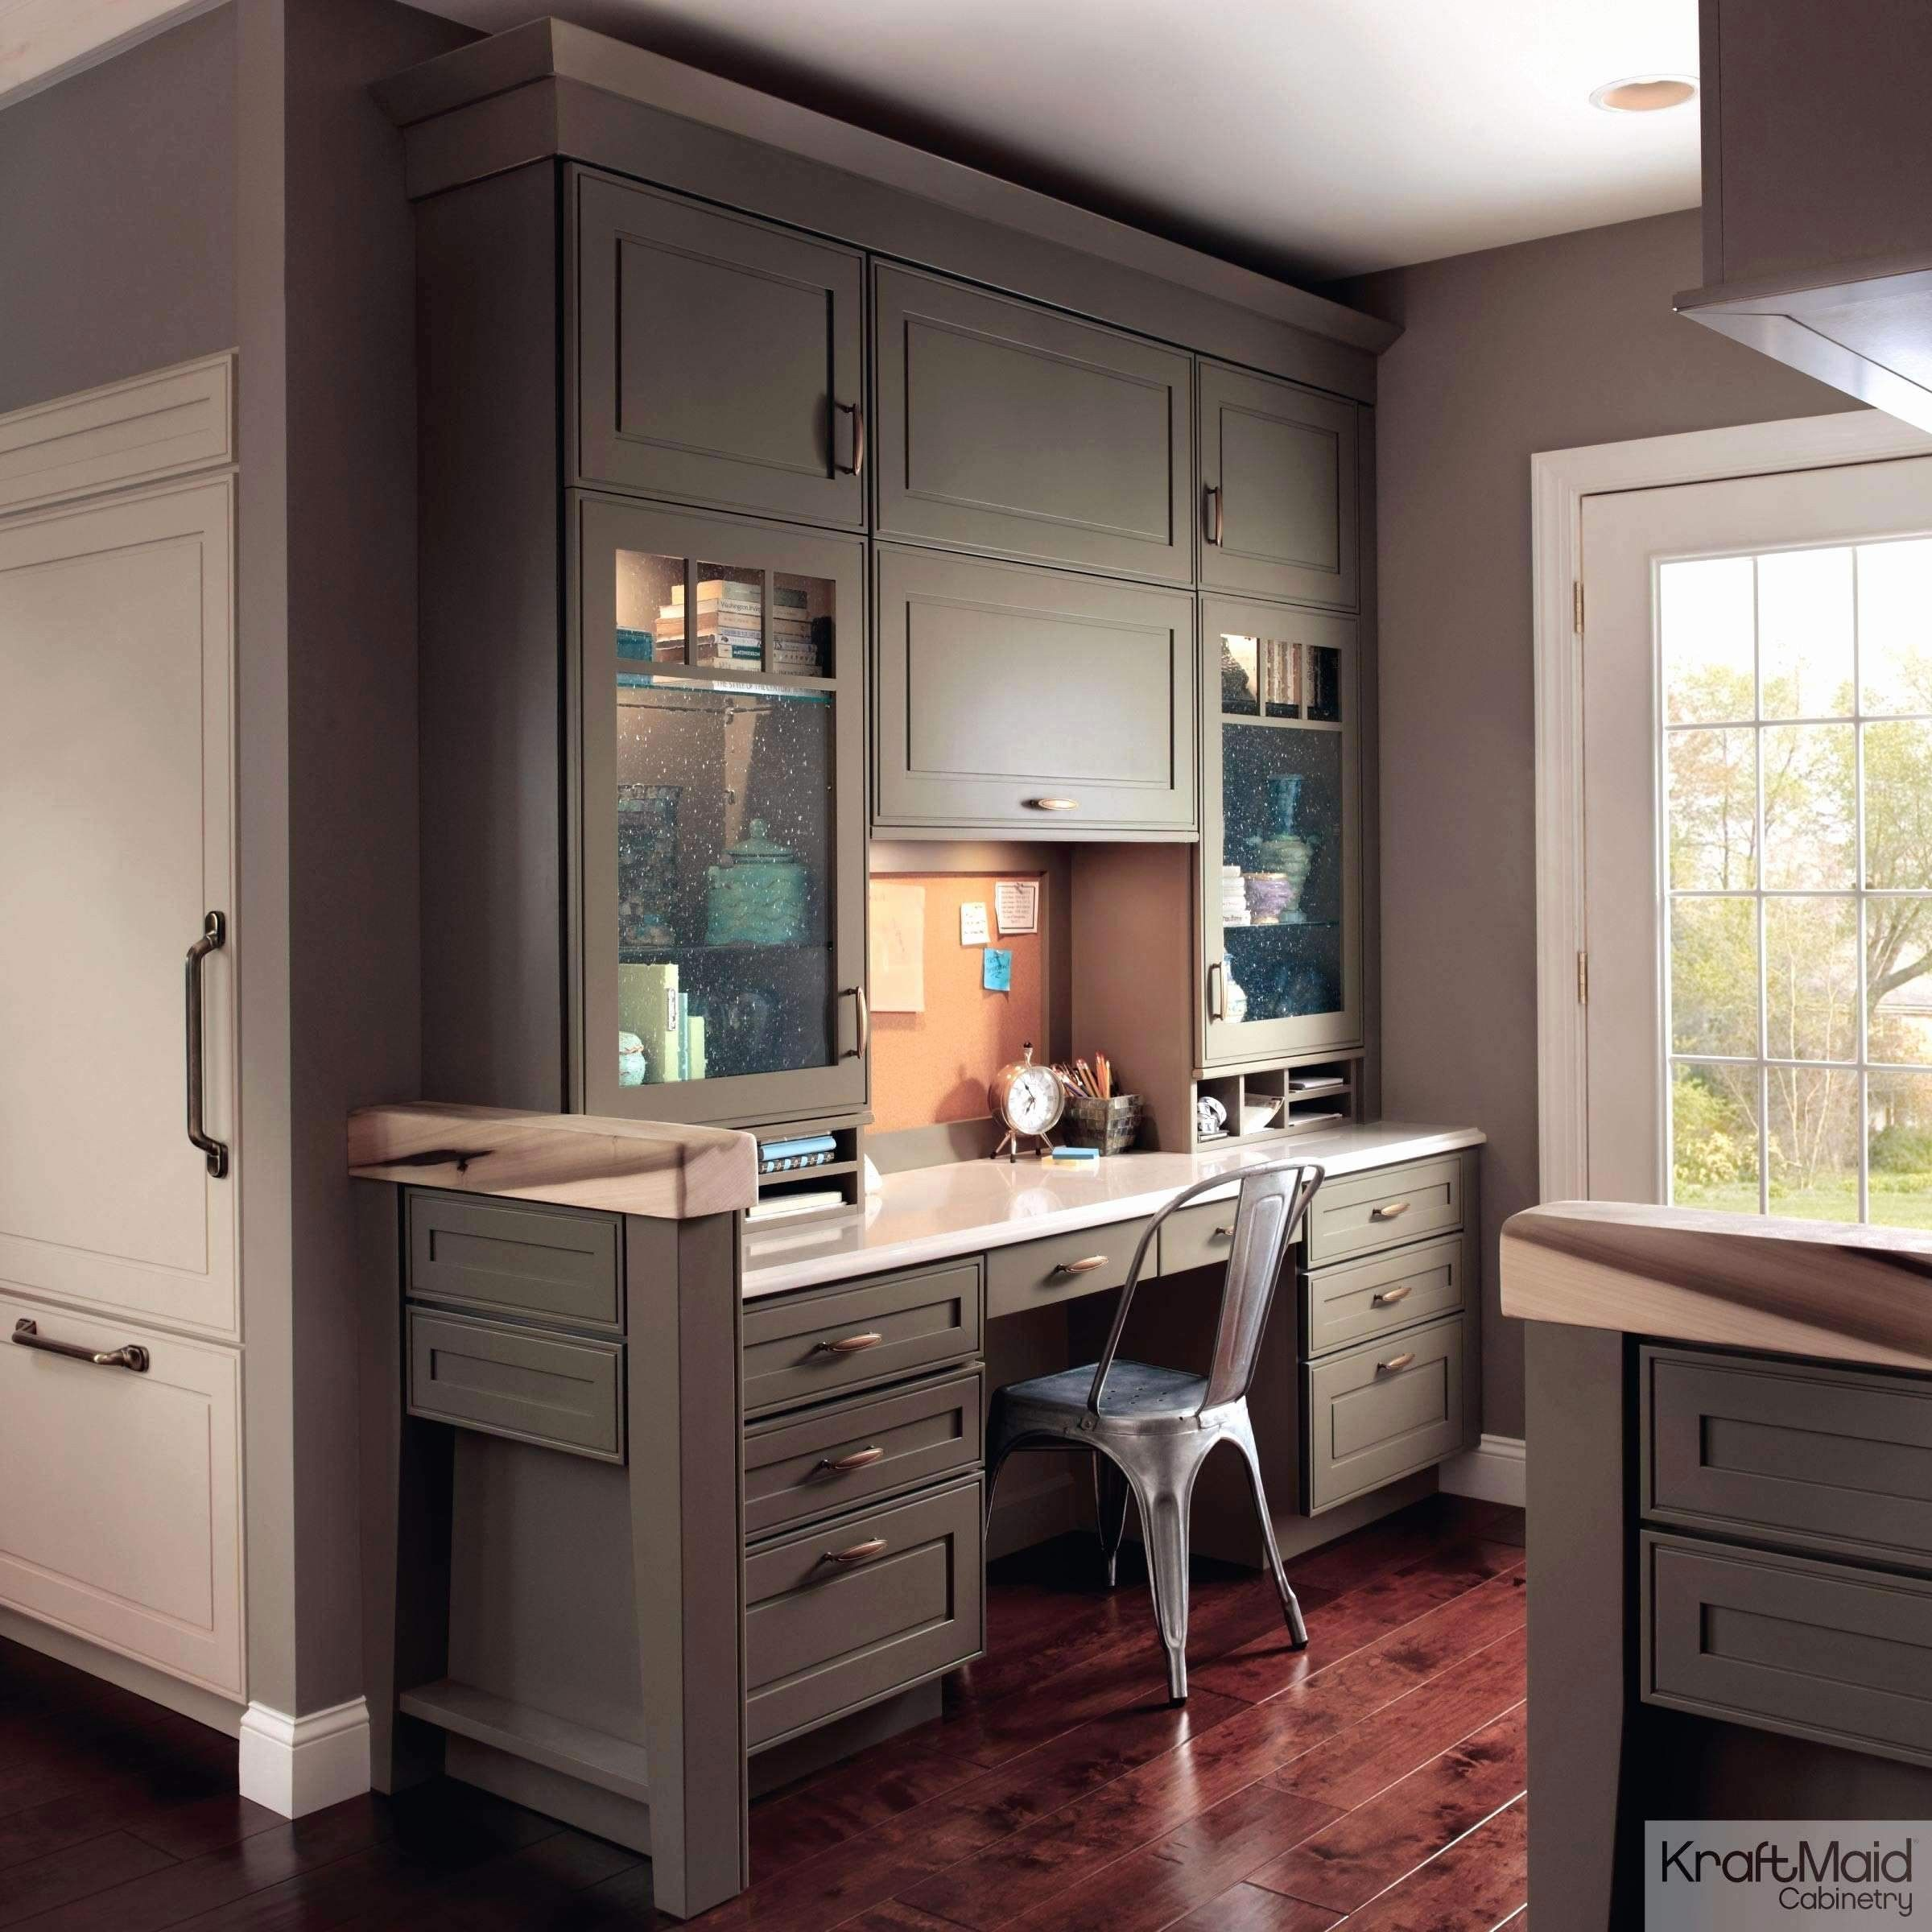 Lowes Kitchen Cabinets Design Check More At Www Homeplans Clu